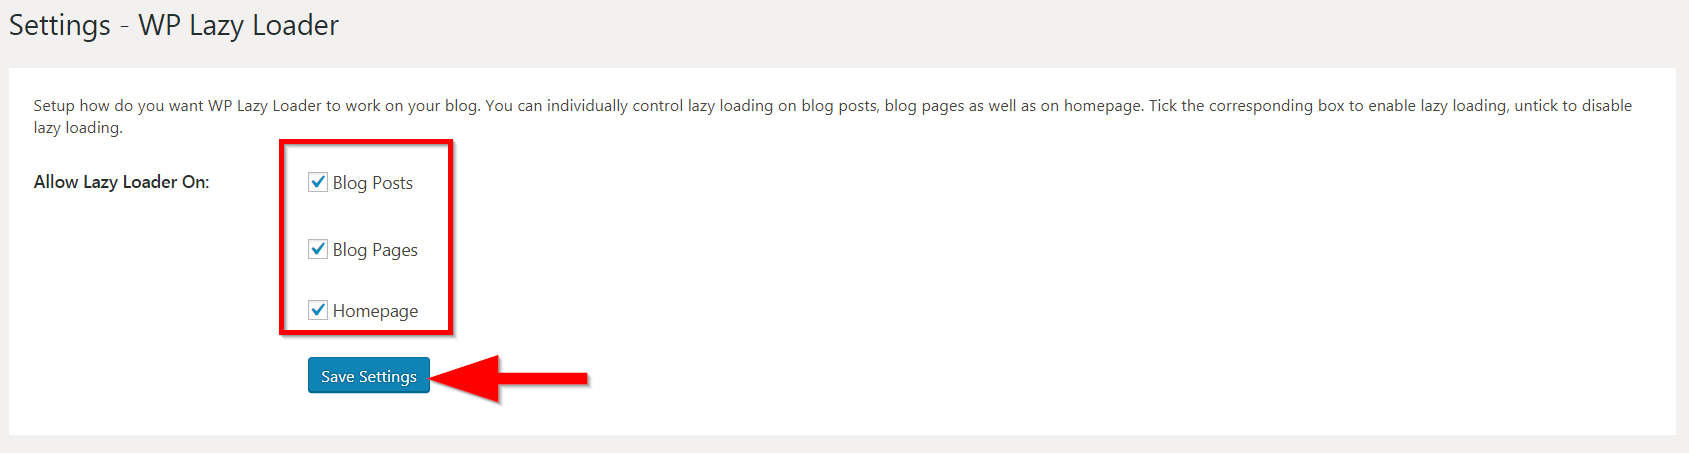 The settings page of WP Lazy Loader plugin.